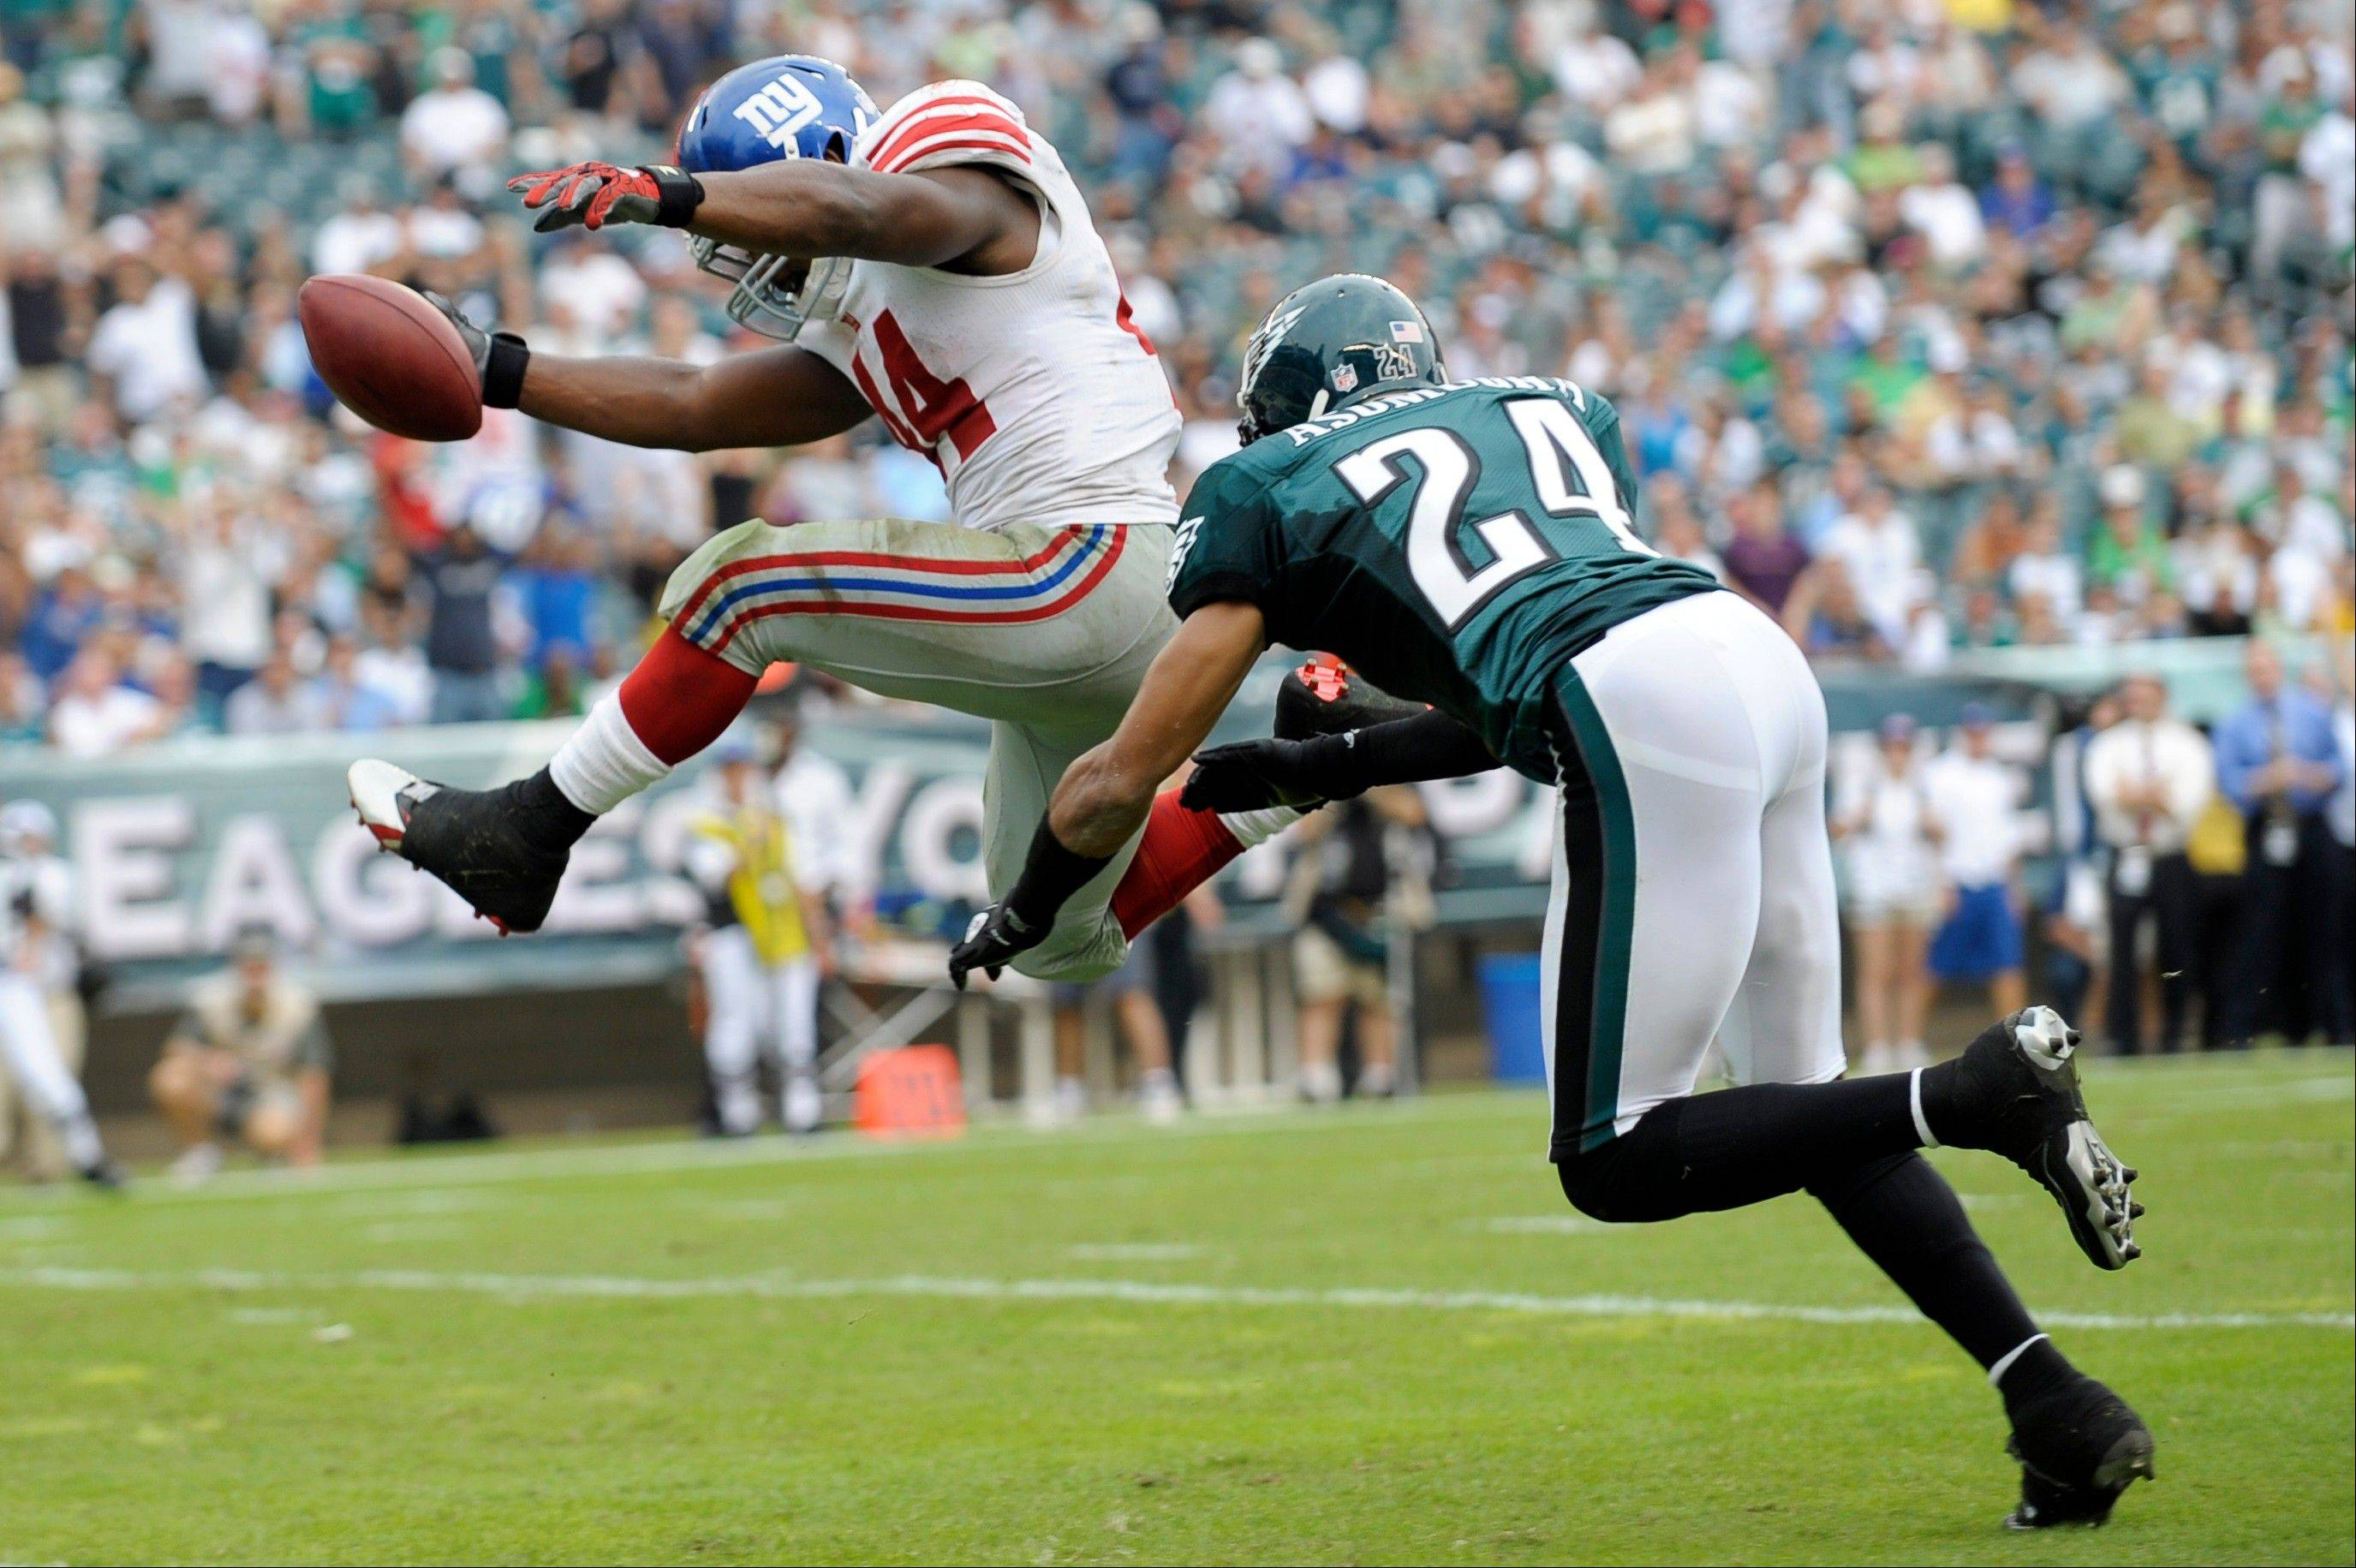 New York Giants running back Ahmad Bradshaw leaps into the end zone for a touchdown as Philadelphia cornerback Nnamdi Asomugha arrives to late Sunday in Philadelphia.